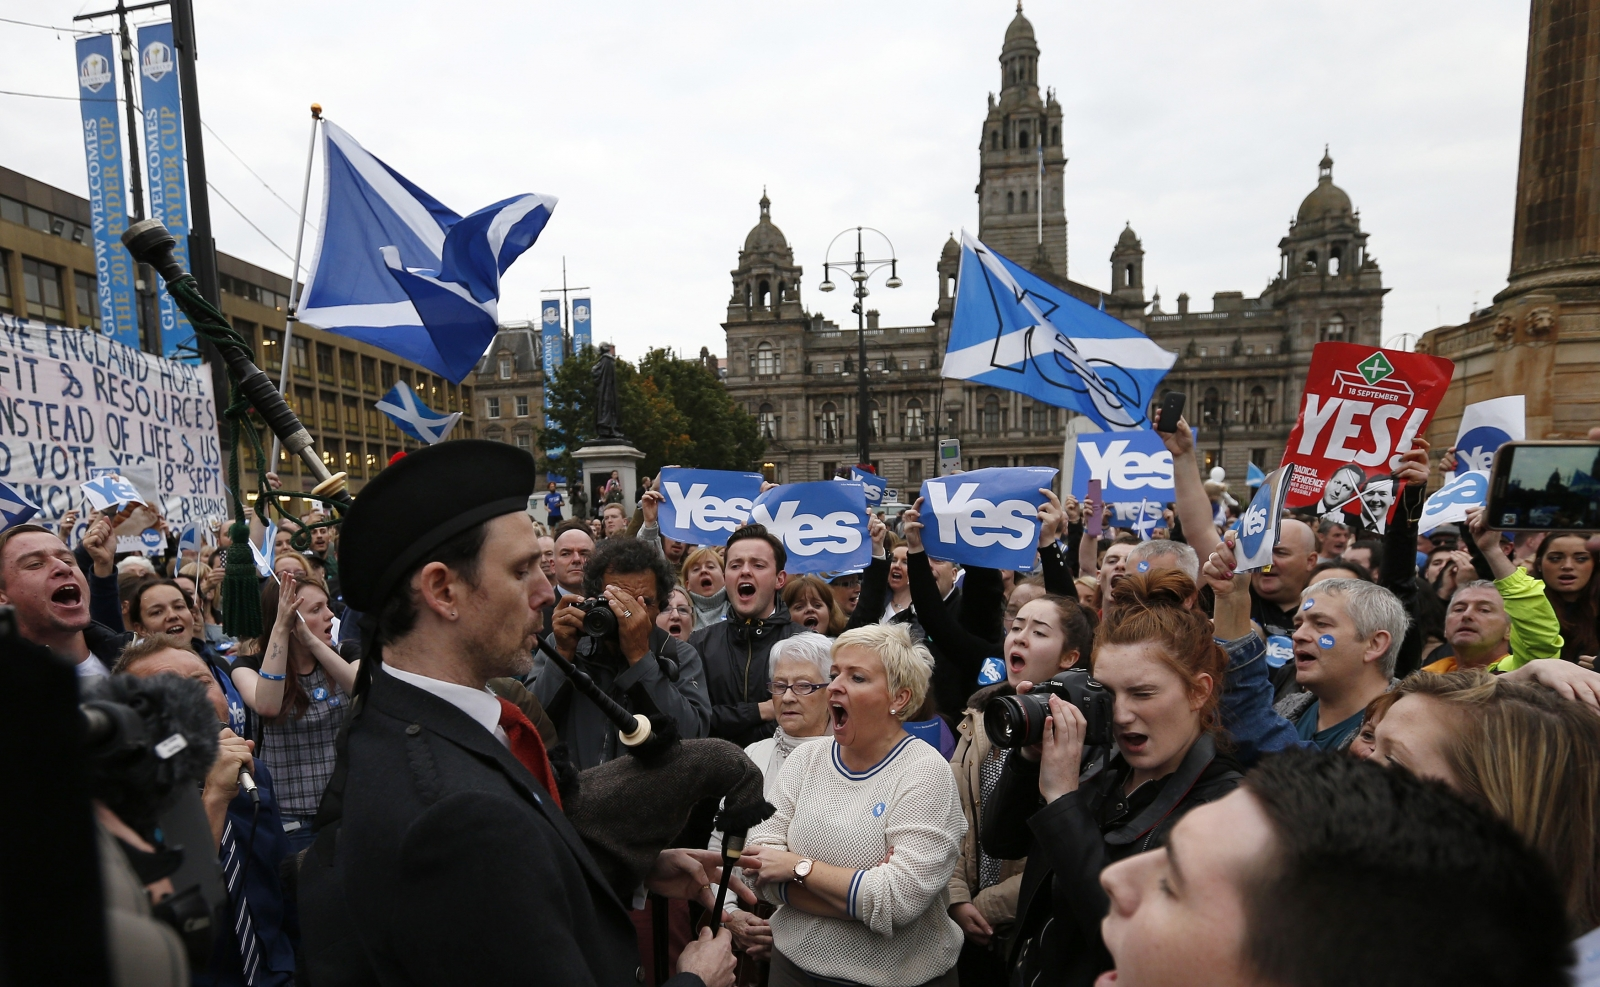 Scottish independence - Glasgow yes campaigners